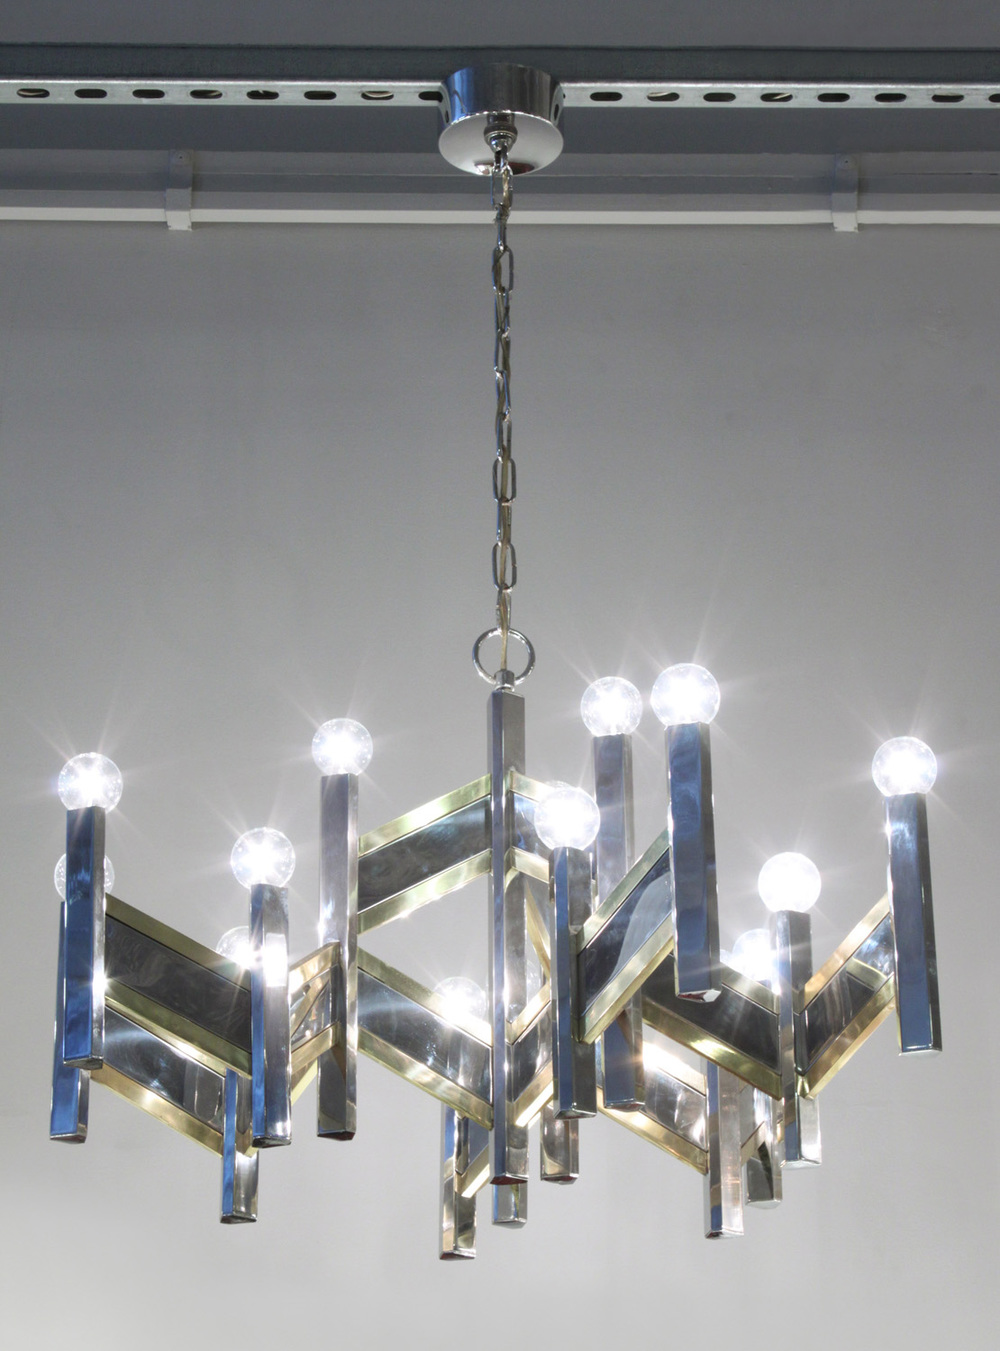 Sciolari 55 chrome+brass angular chandelier215 detail3 hires.jpg